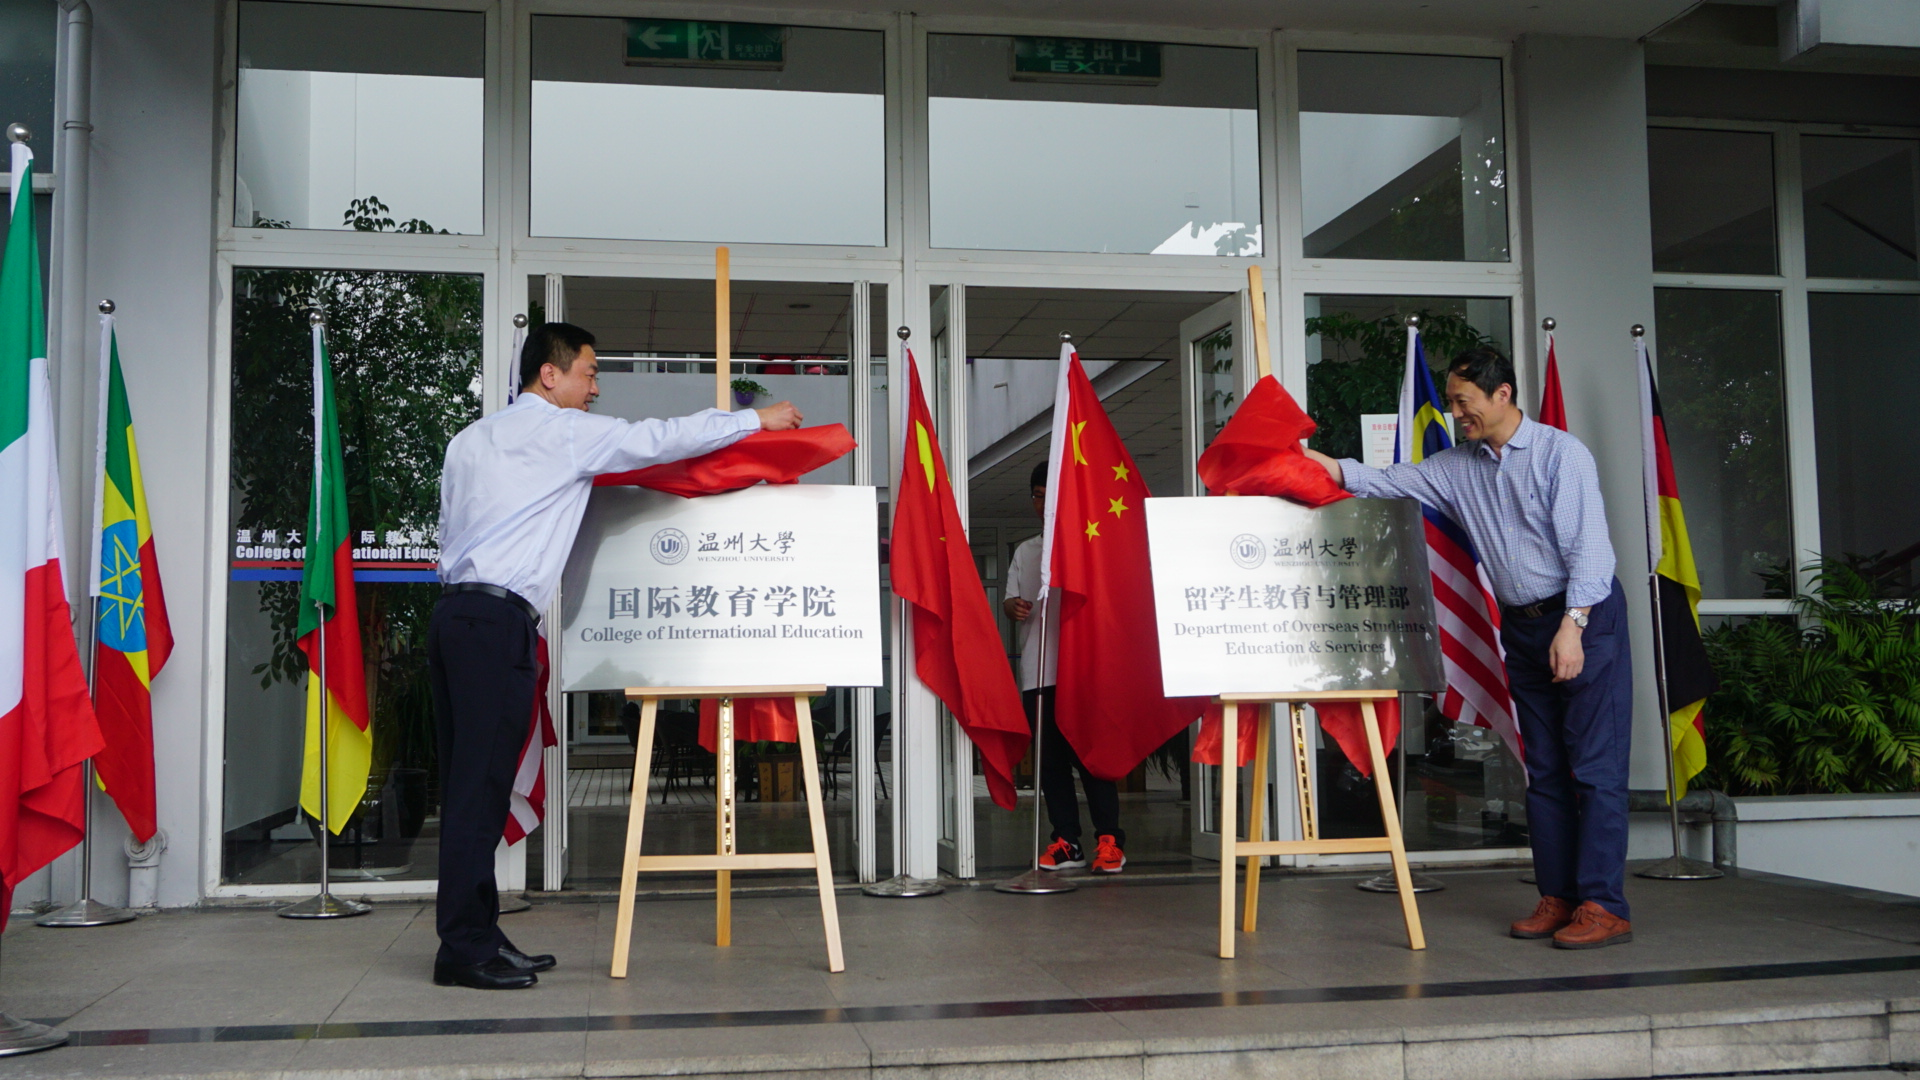 Wenzhou University holds the inauguration ceremony of Department of Overseas Students Education & Services and College of International Education